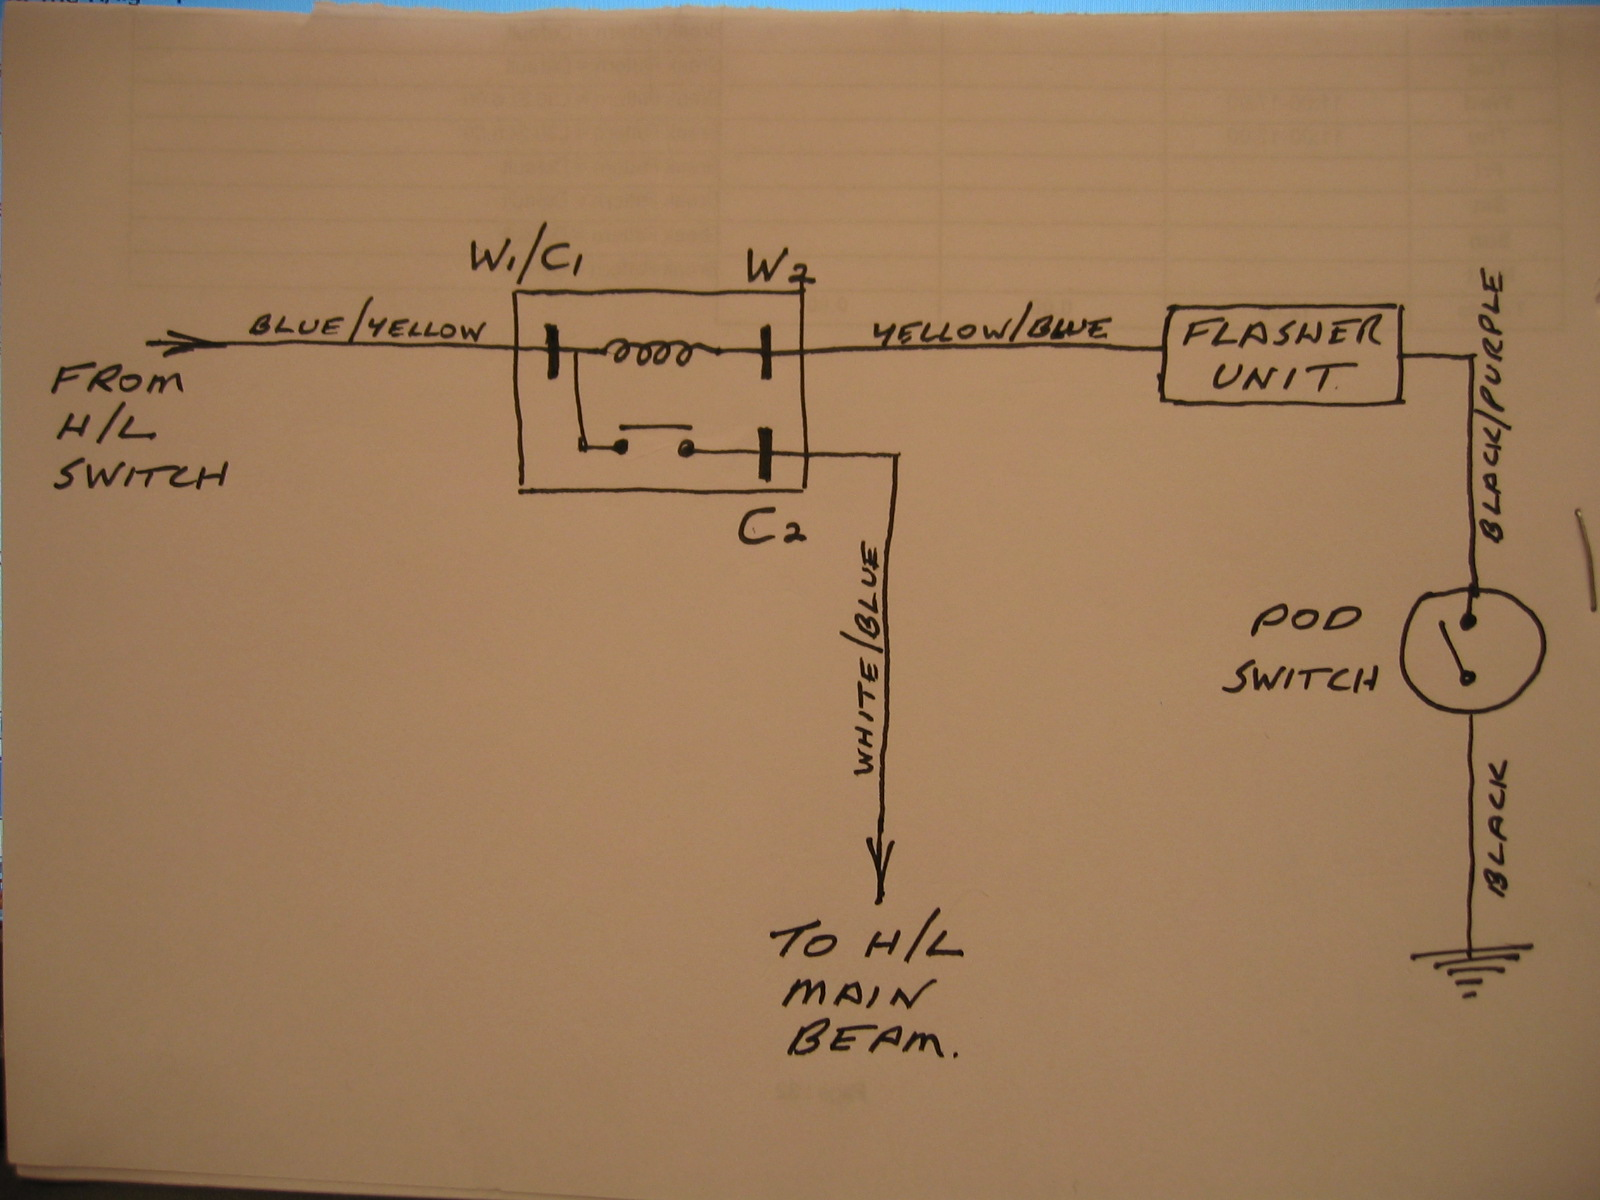 Lucas Flasher Unit Wiring Diagram 33 Images Pg 3 Prong 220v Wire Headlamp Circuit 002 And